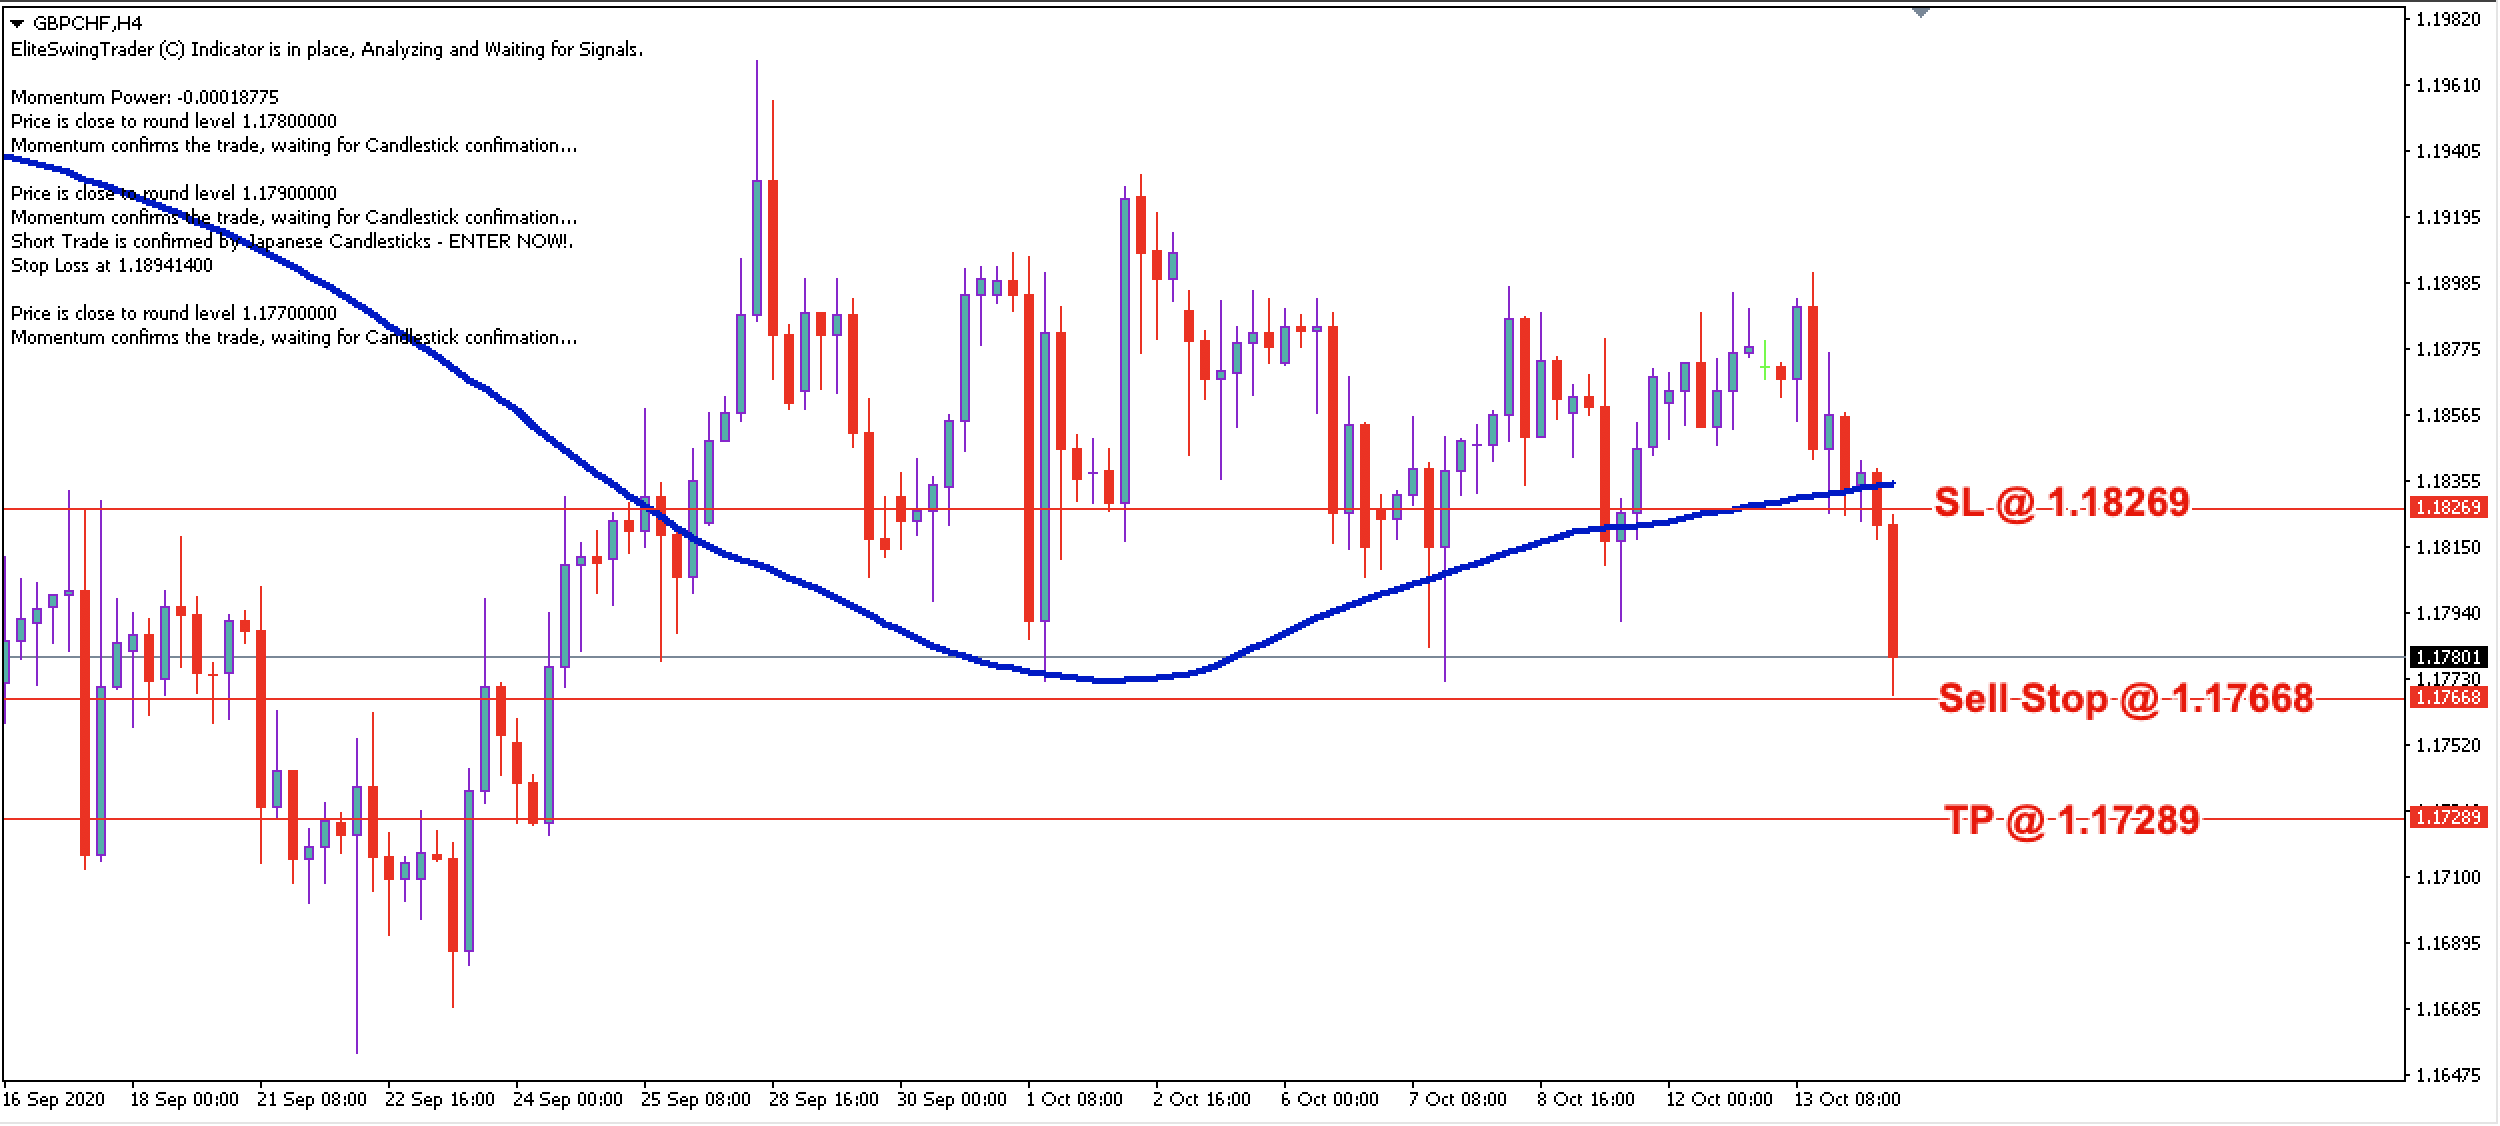 GBP/CHF Daily Price Forecast - 14th Oct 2020